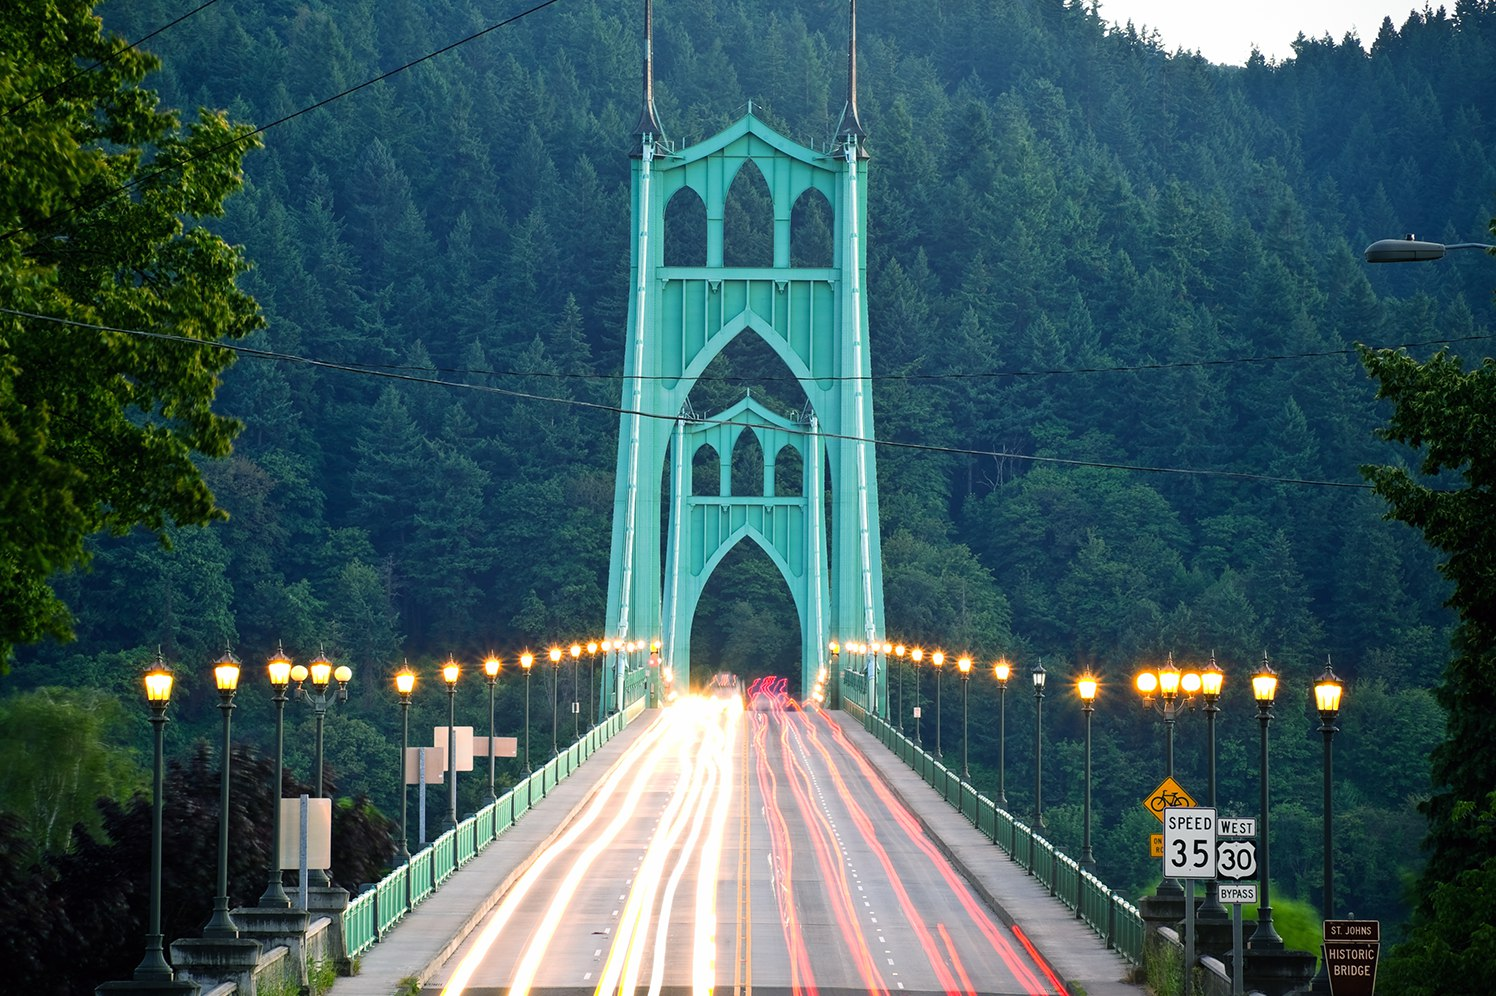 st johns bridge in Portland